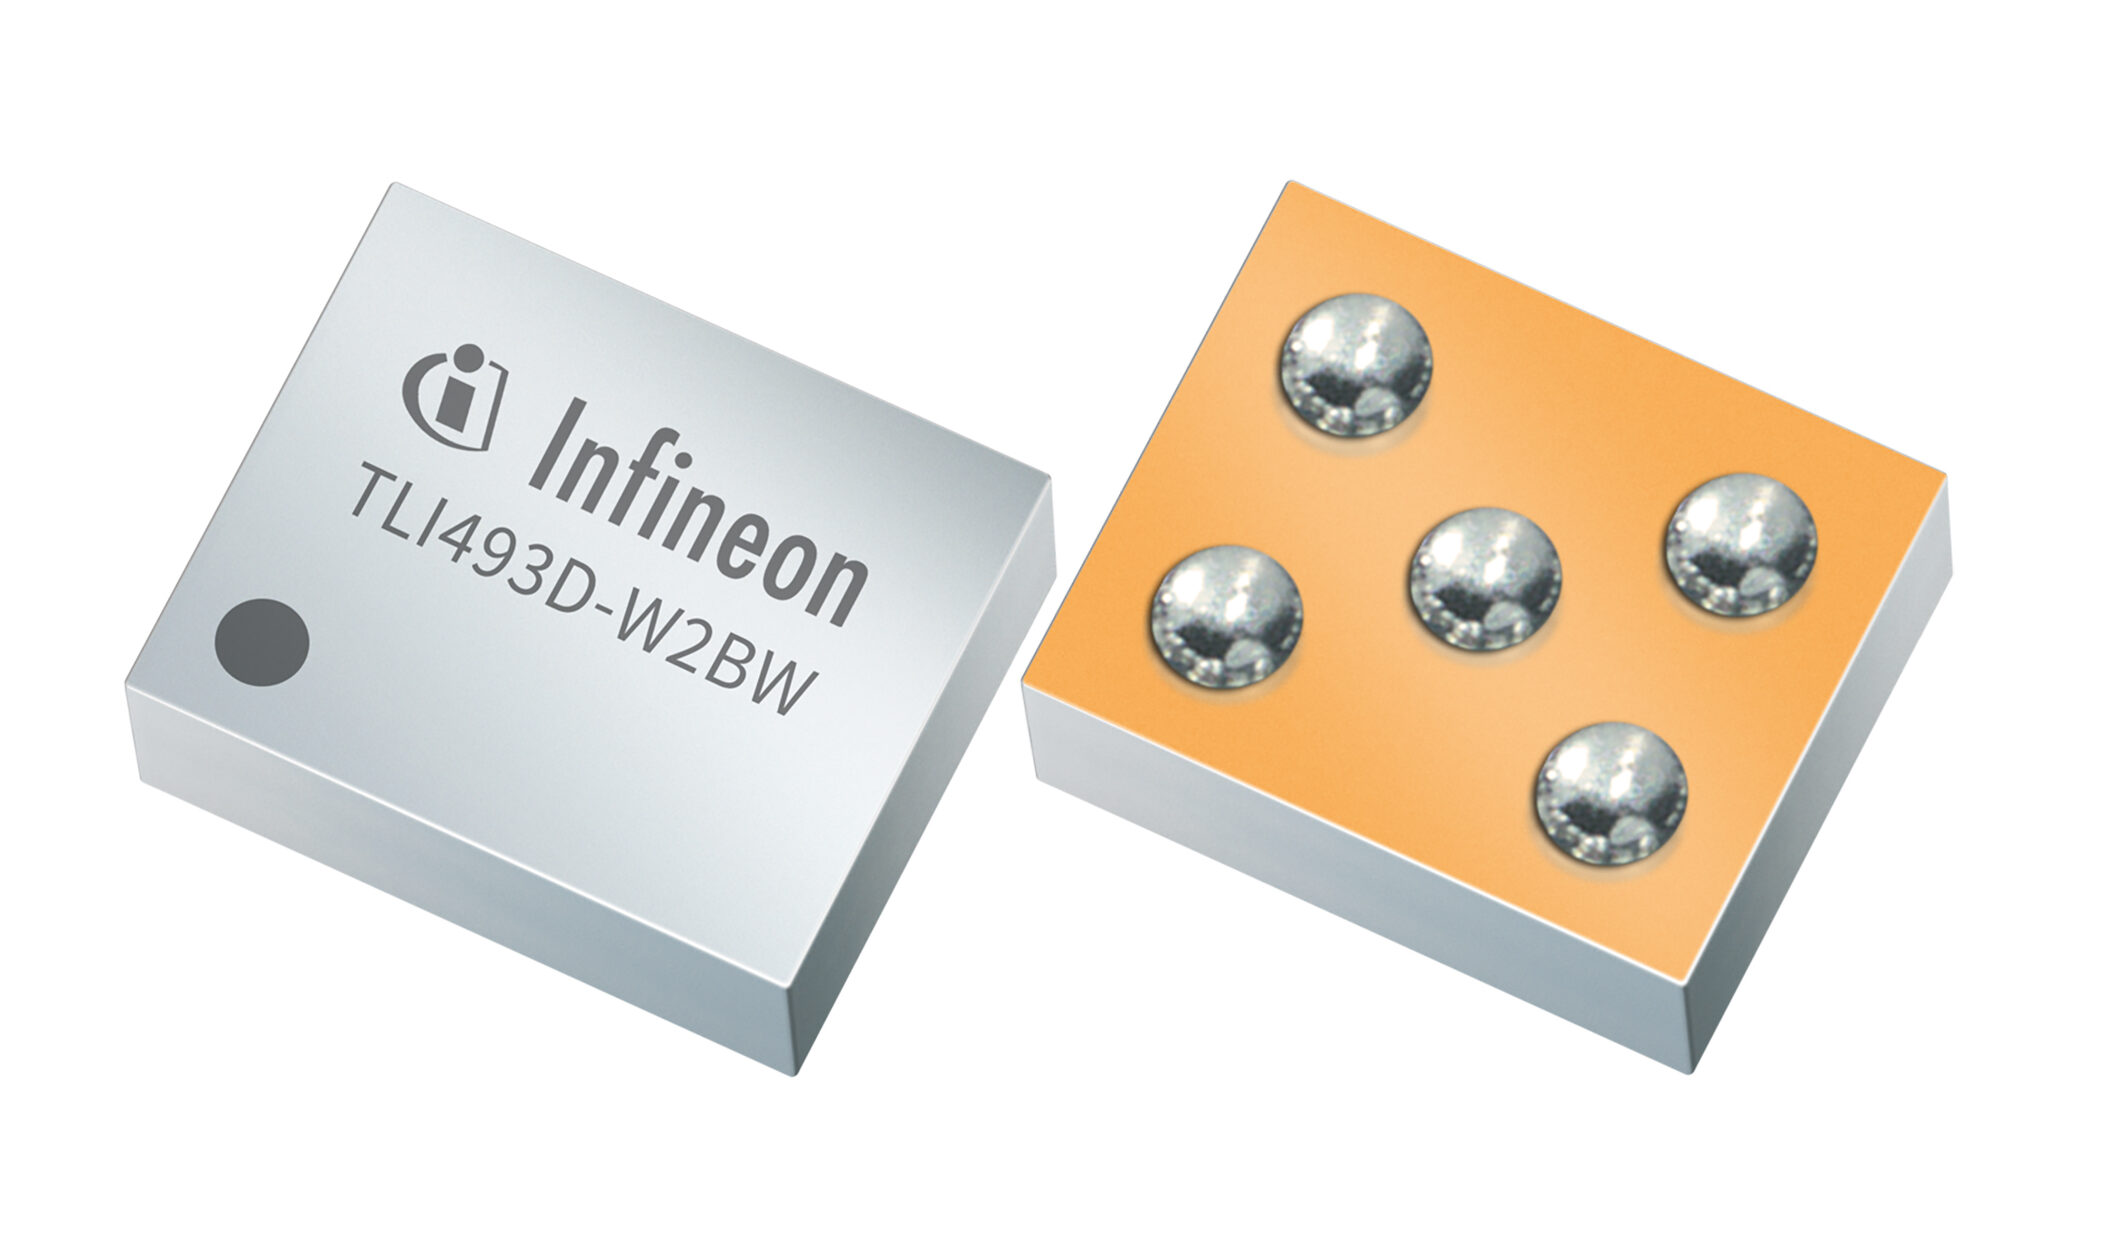 Extremely small power-saving 3D magnetic sensor opens up new design options